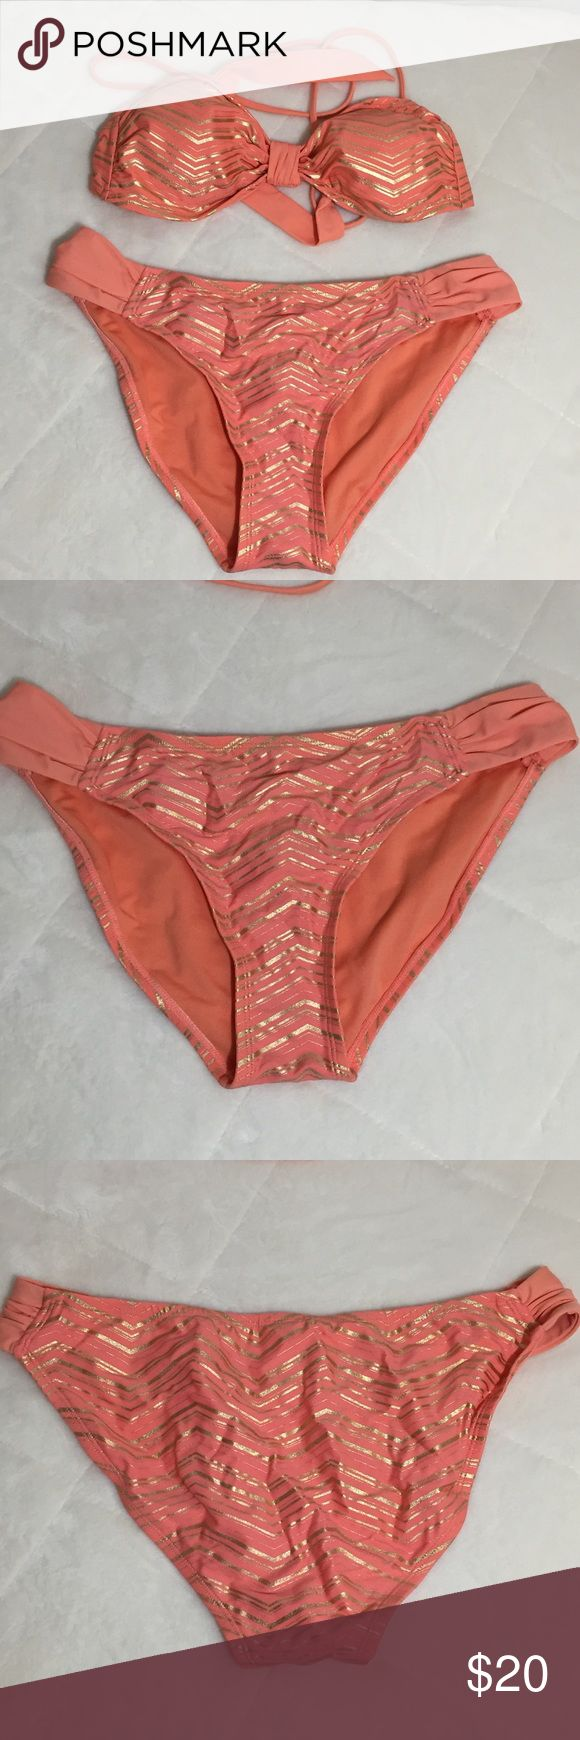 Xhilaration Bikini Size L Orange and flattering gold zig zag stripes  The top as a plain band separating the lightly padded cups. Tie closure on bottom and top, making it easy to fit most cut sizes  The bottoms have a plain band holding the front and rear together. Xhilaration Swim Bikinis